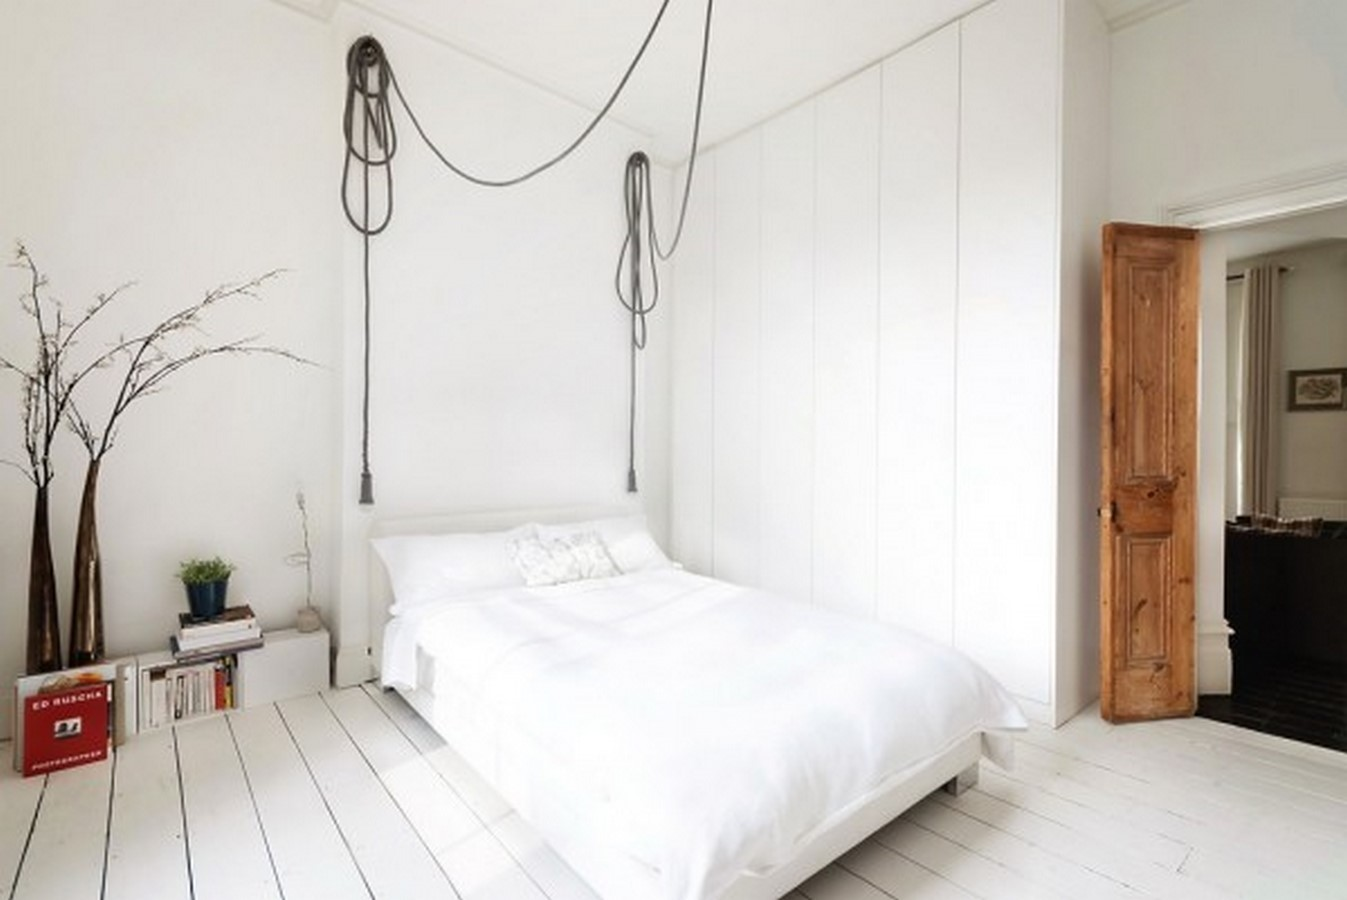 Can luxury fit into a 600sq.ft apartment - Sheet9